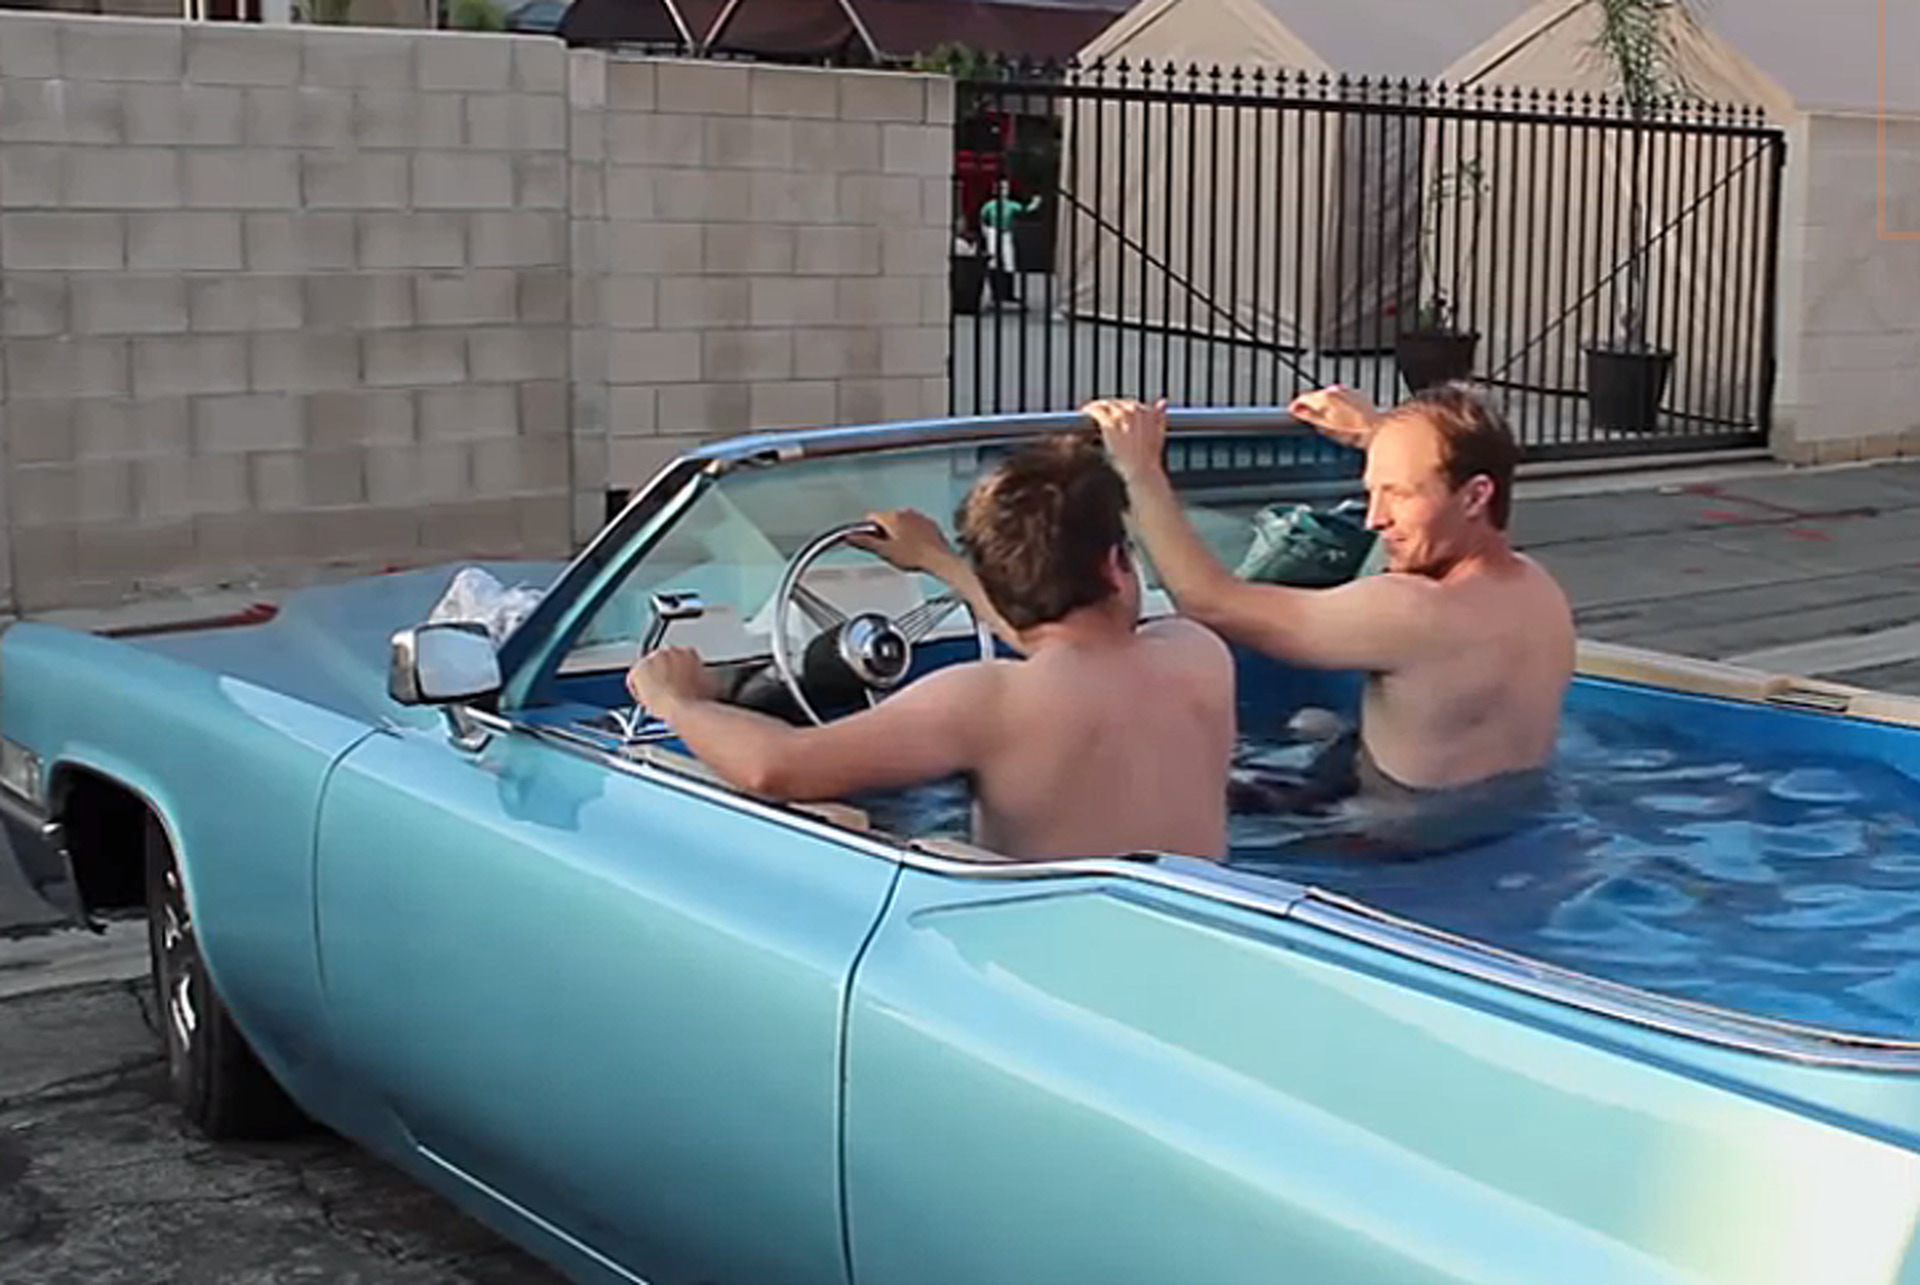 Duo Seeks World Record for Fastest Hot Tub [Video]